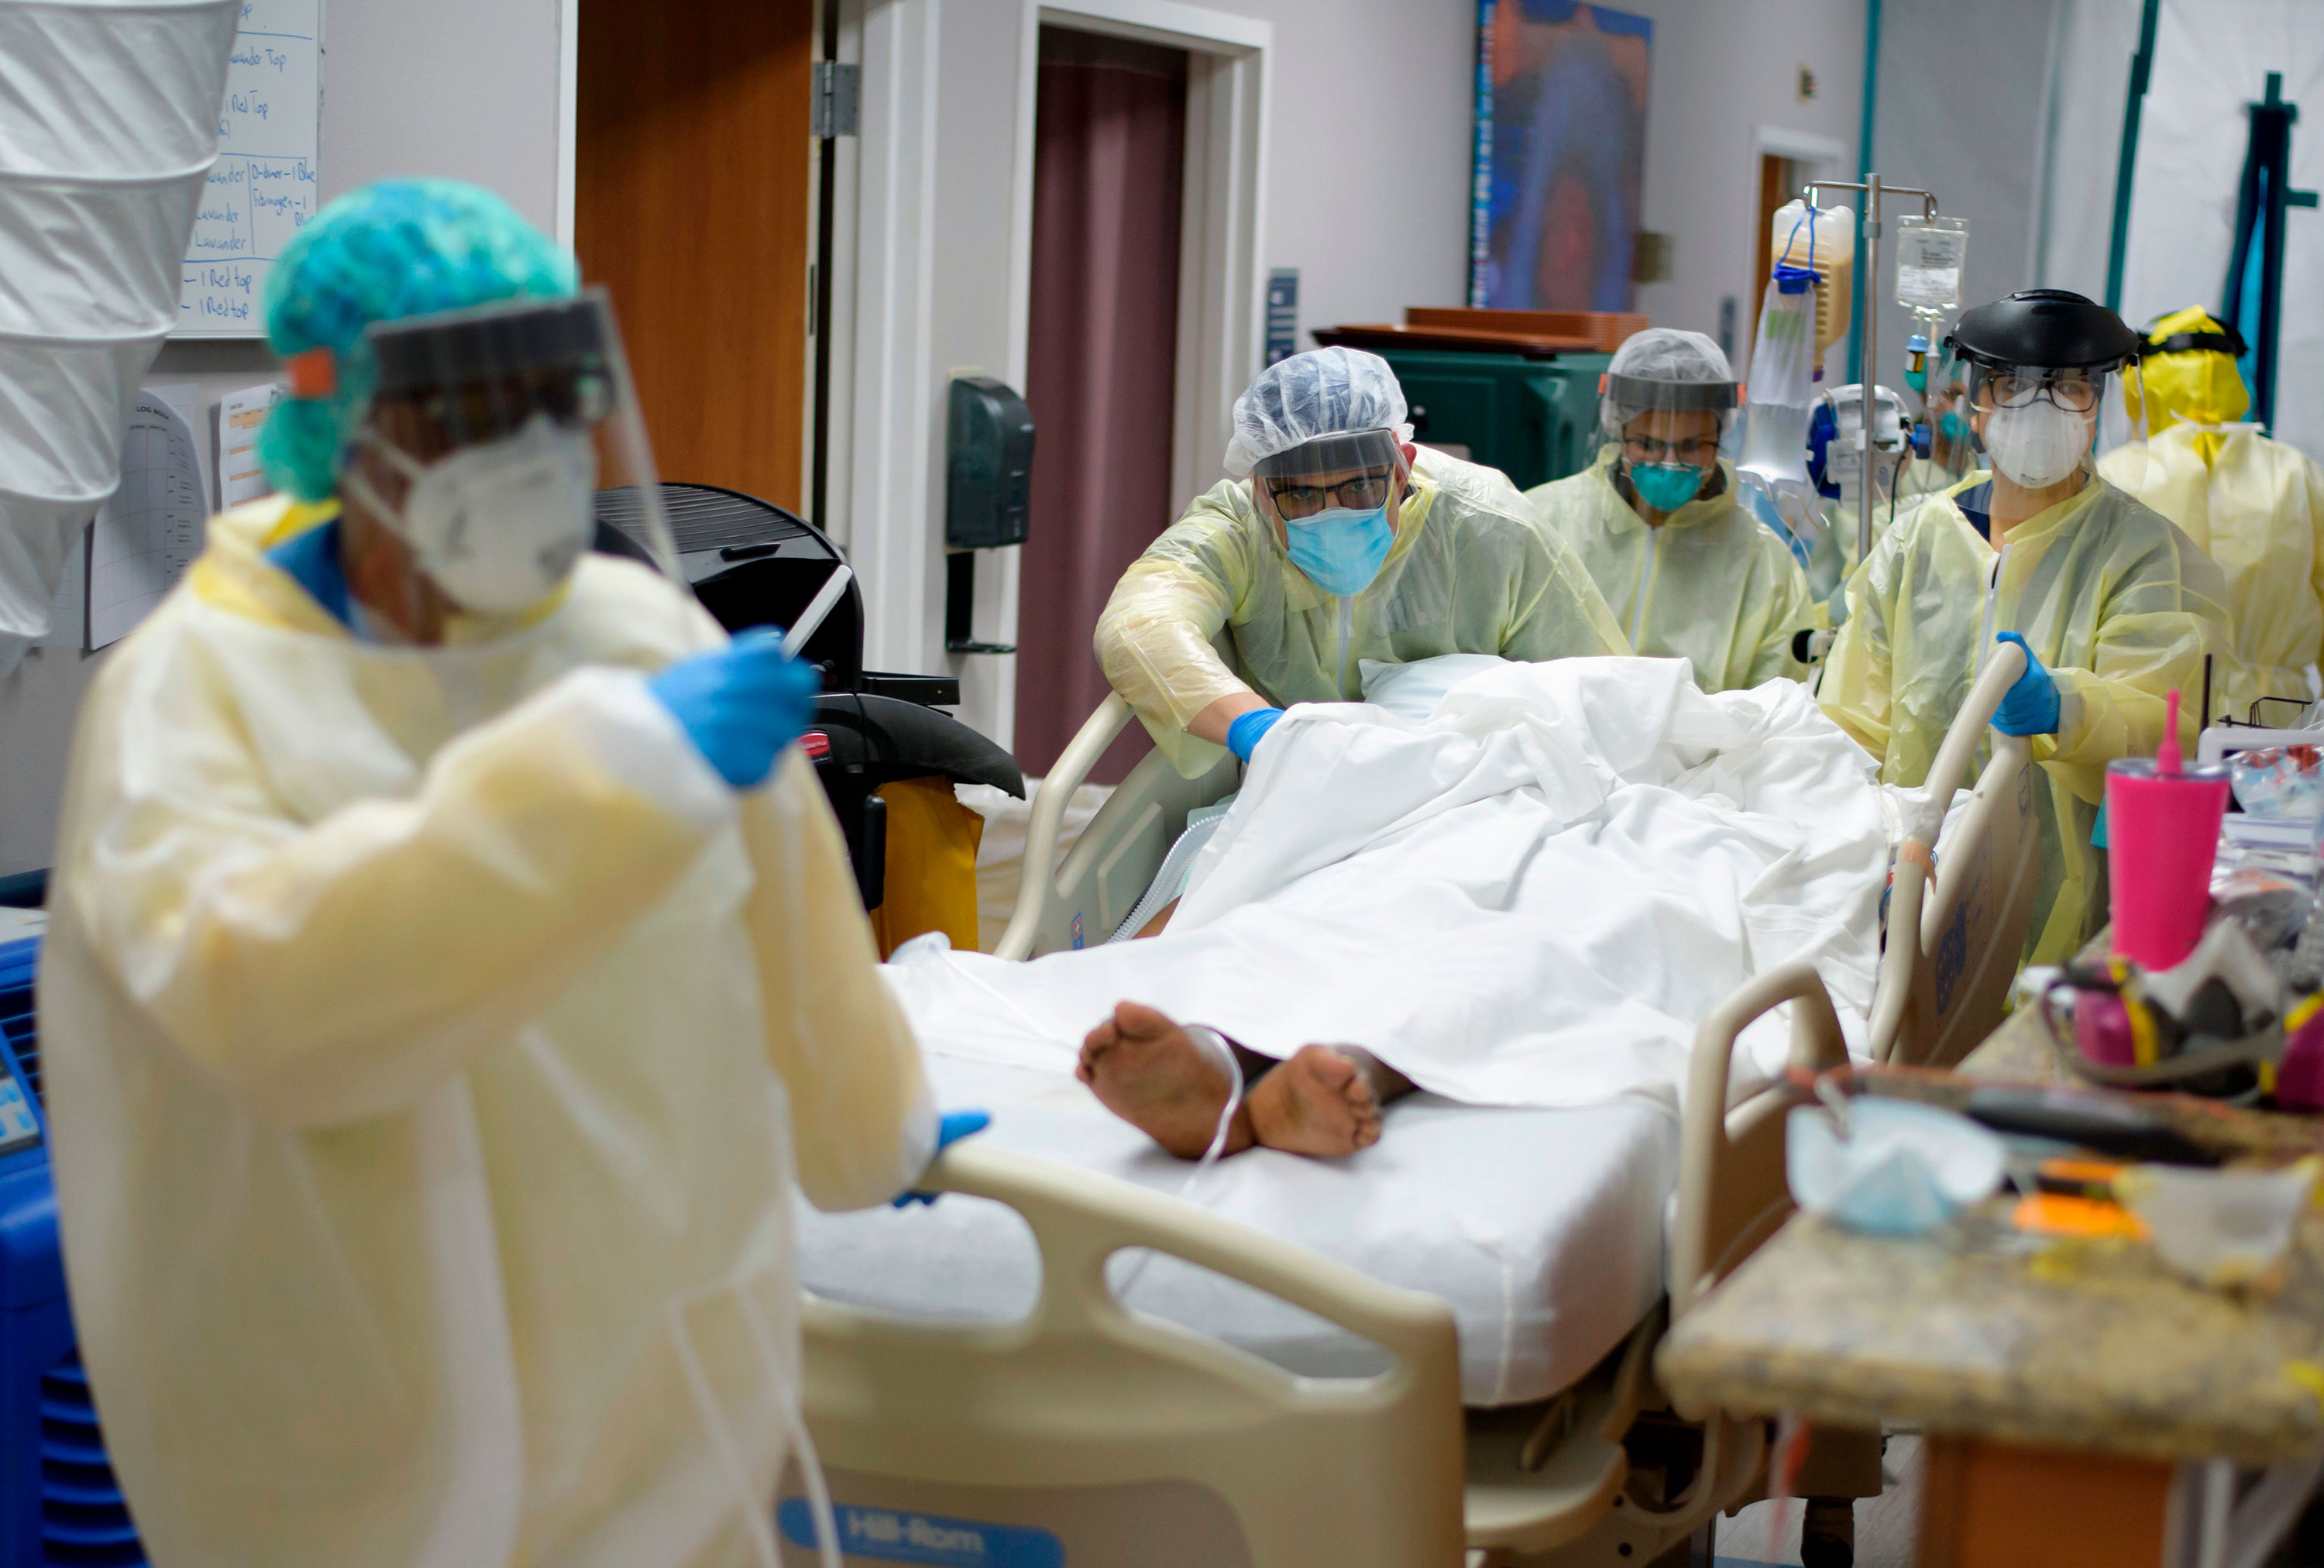 Healthcare workers move a patient in the Covid-19 Unit at United Memorial Medical Center in Houston, Texas, on July 2.